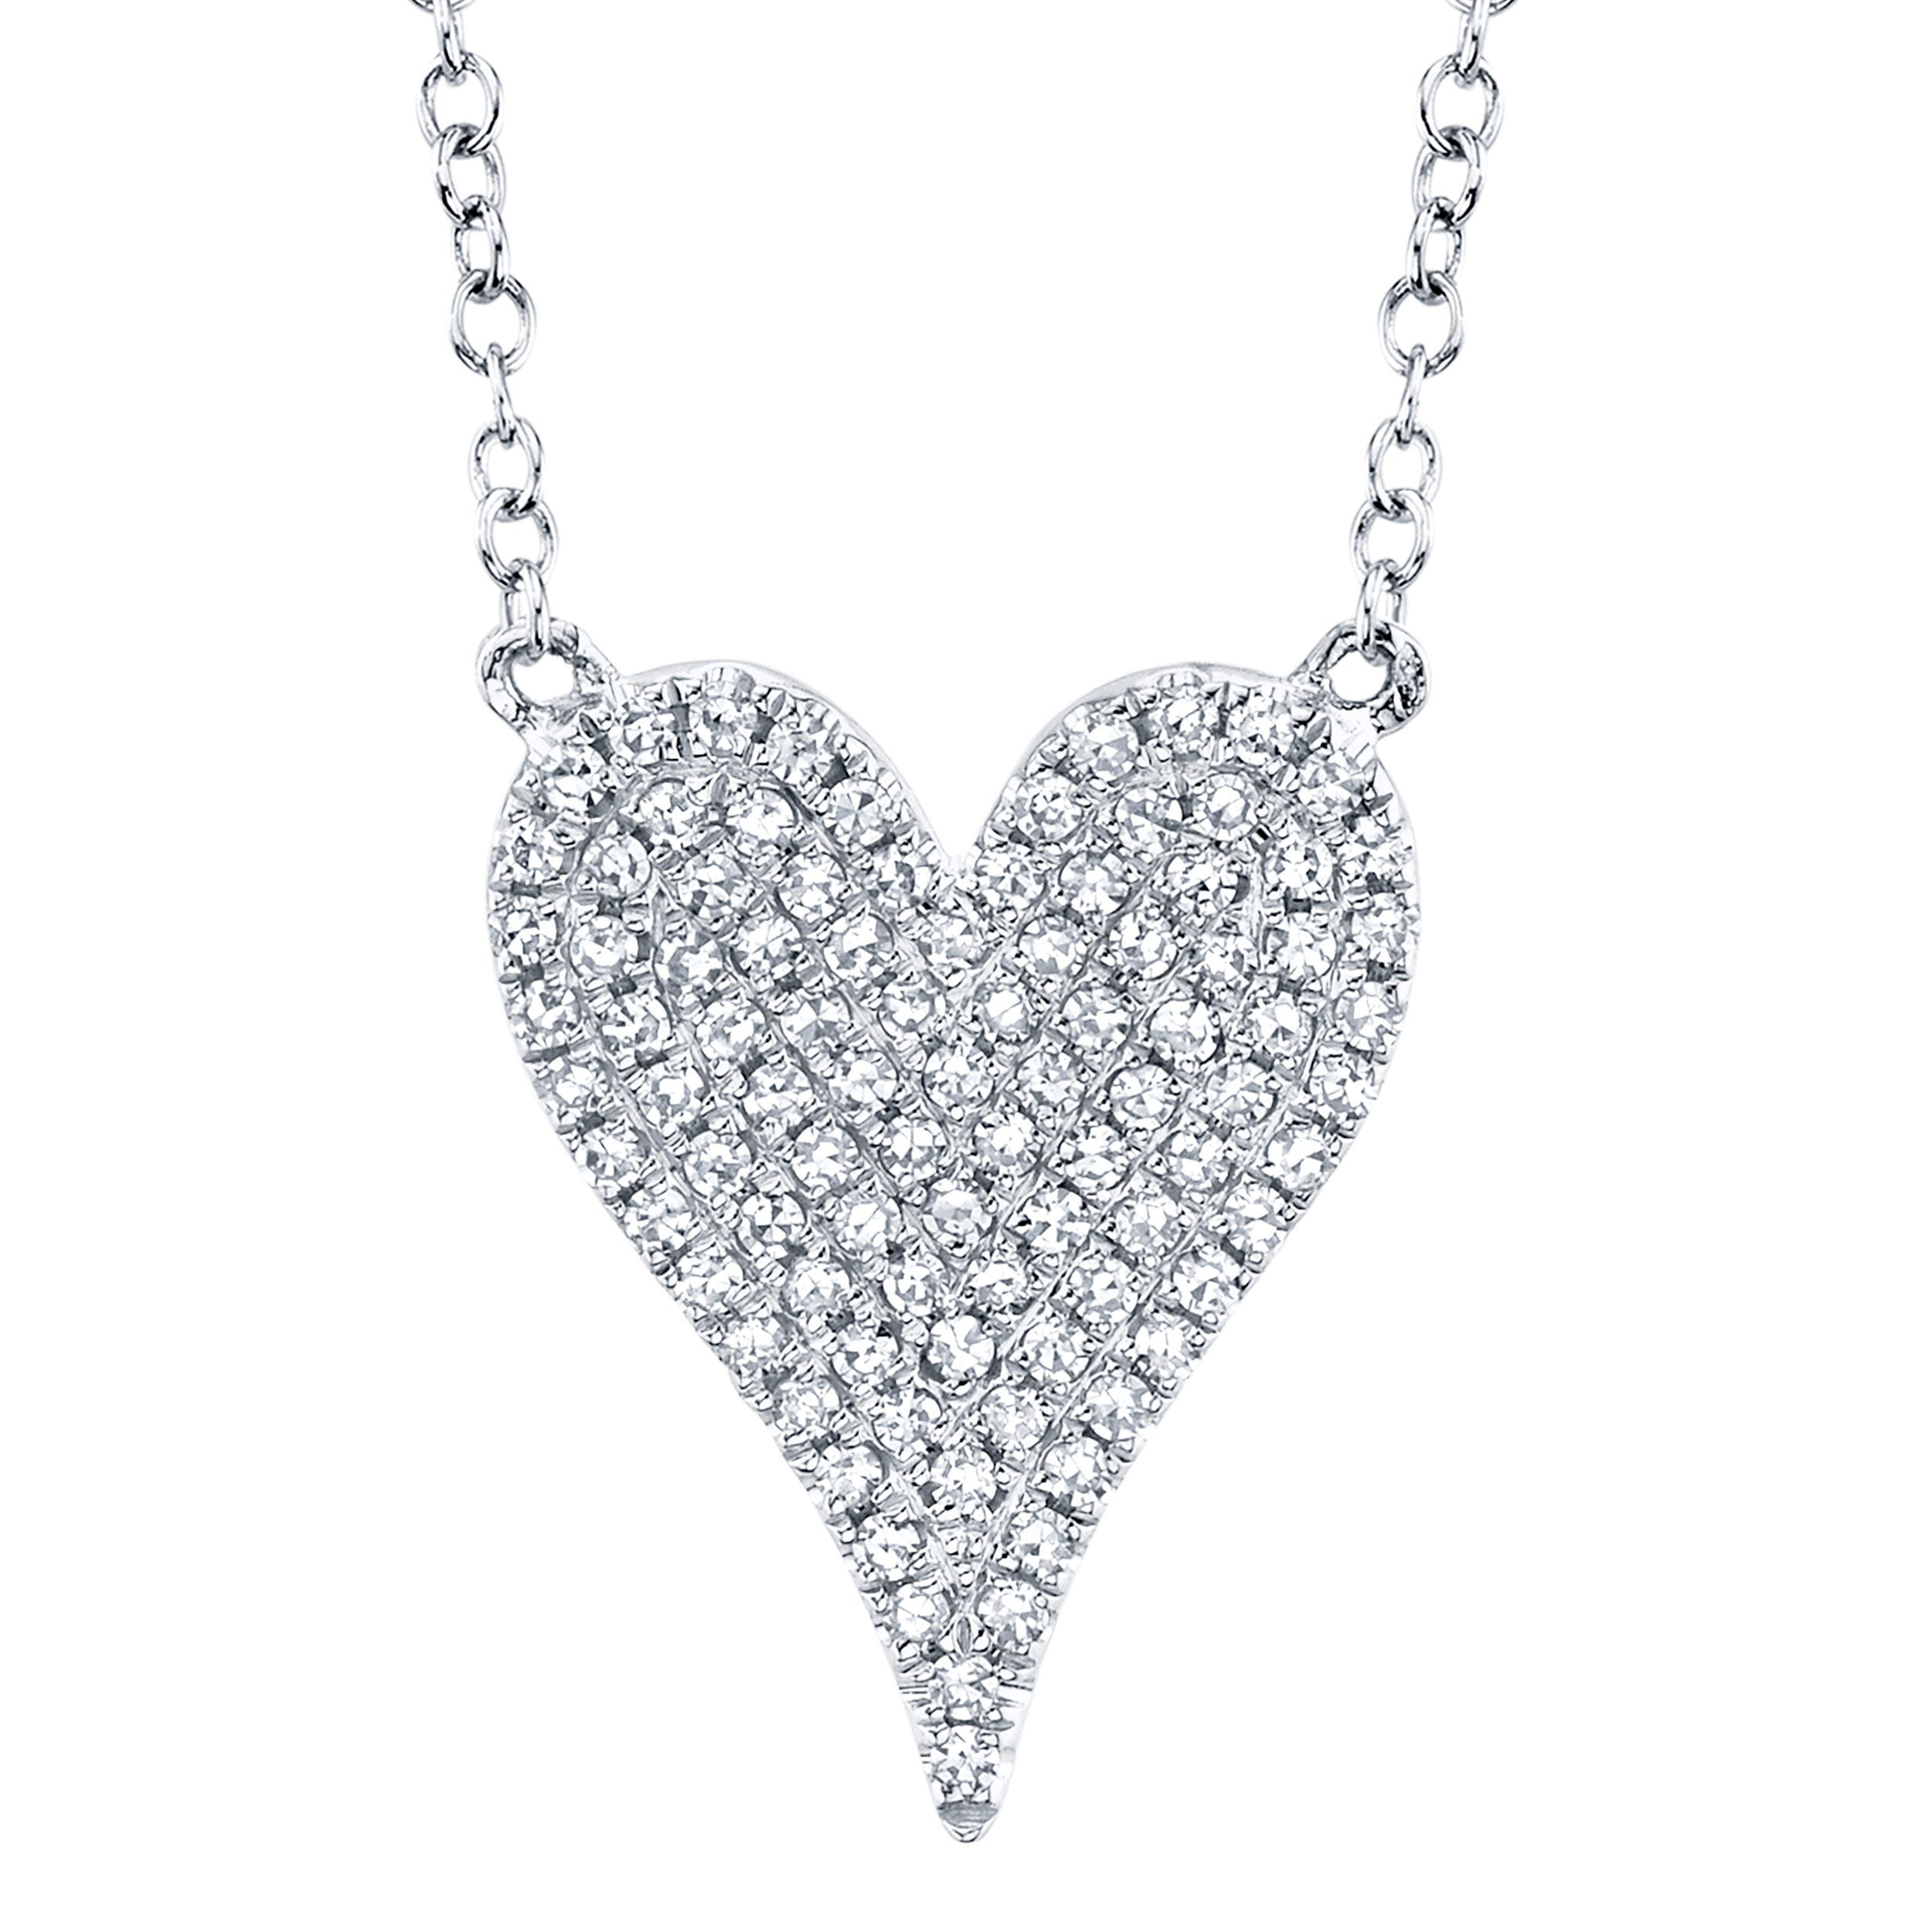 Shy Creation Diamond Pave Heart Necklace in 14k White Gold SC55002004